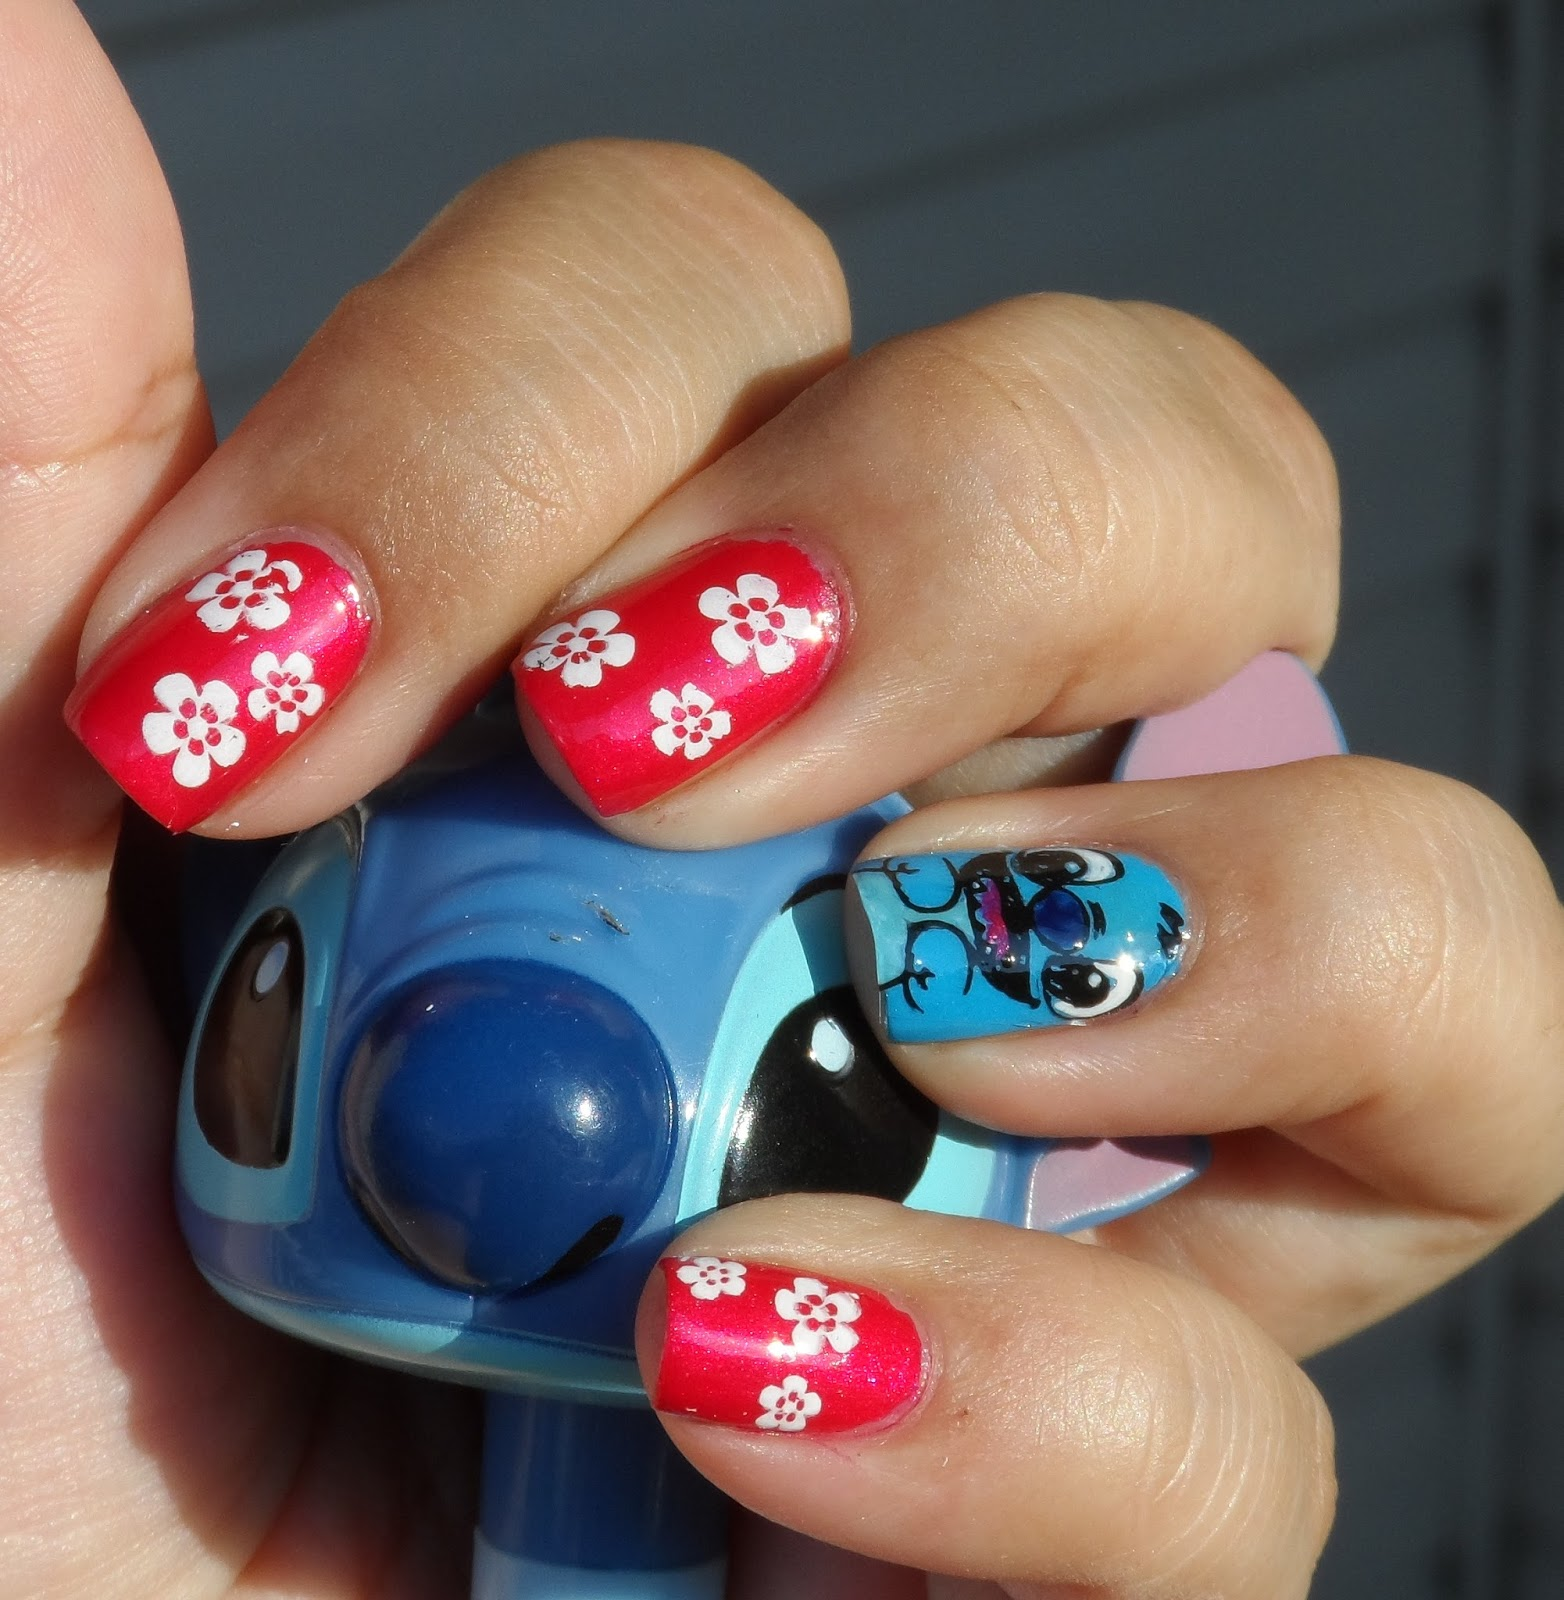 Just Me and My Nails: Lilo and Stitch Nails